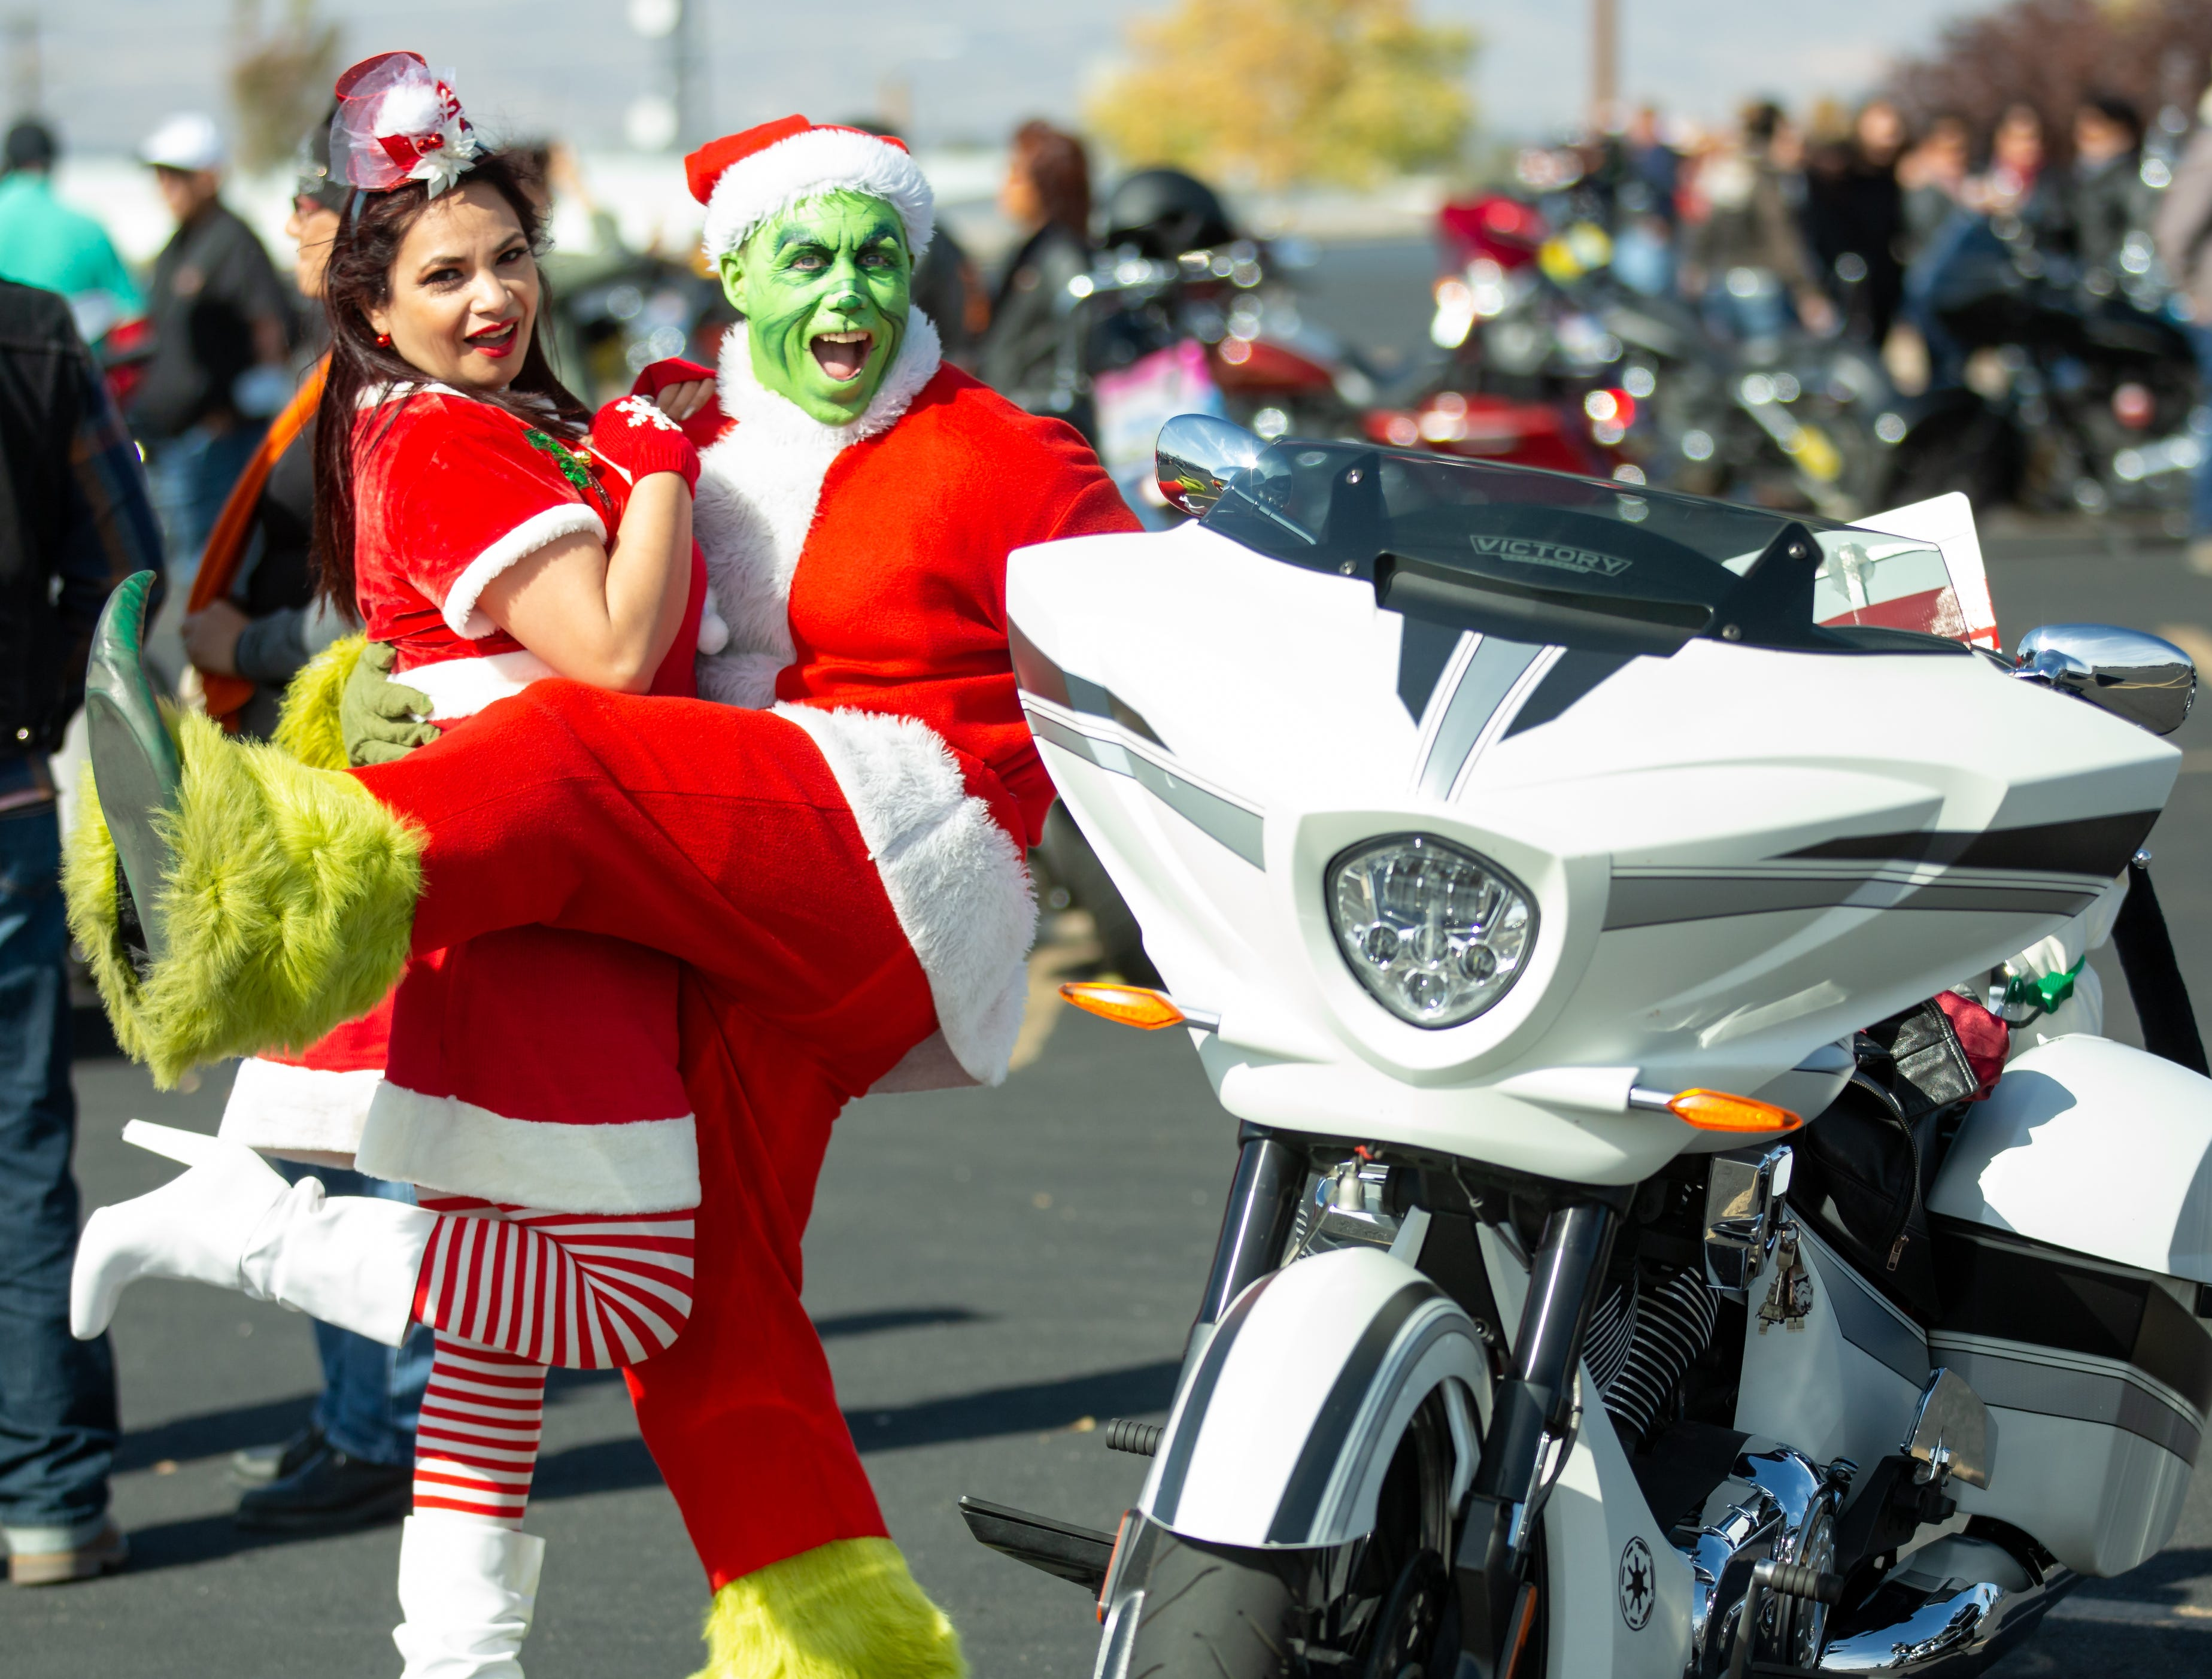 The Grinch and Martha May make an appearance on Sunday Nov. 18, 2018, during the 38th annual Toys for Kids Motorcycle Parade to benefit children in southern New Mexico. The Grinch was giving out boxes of coal wrapped pink boxes.